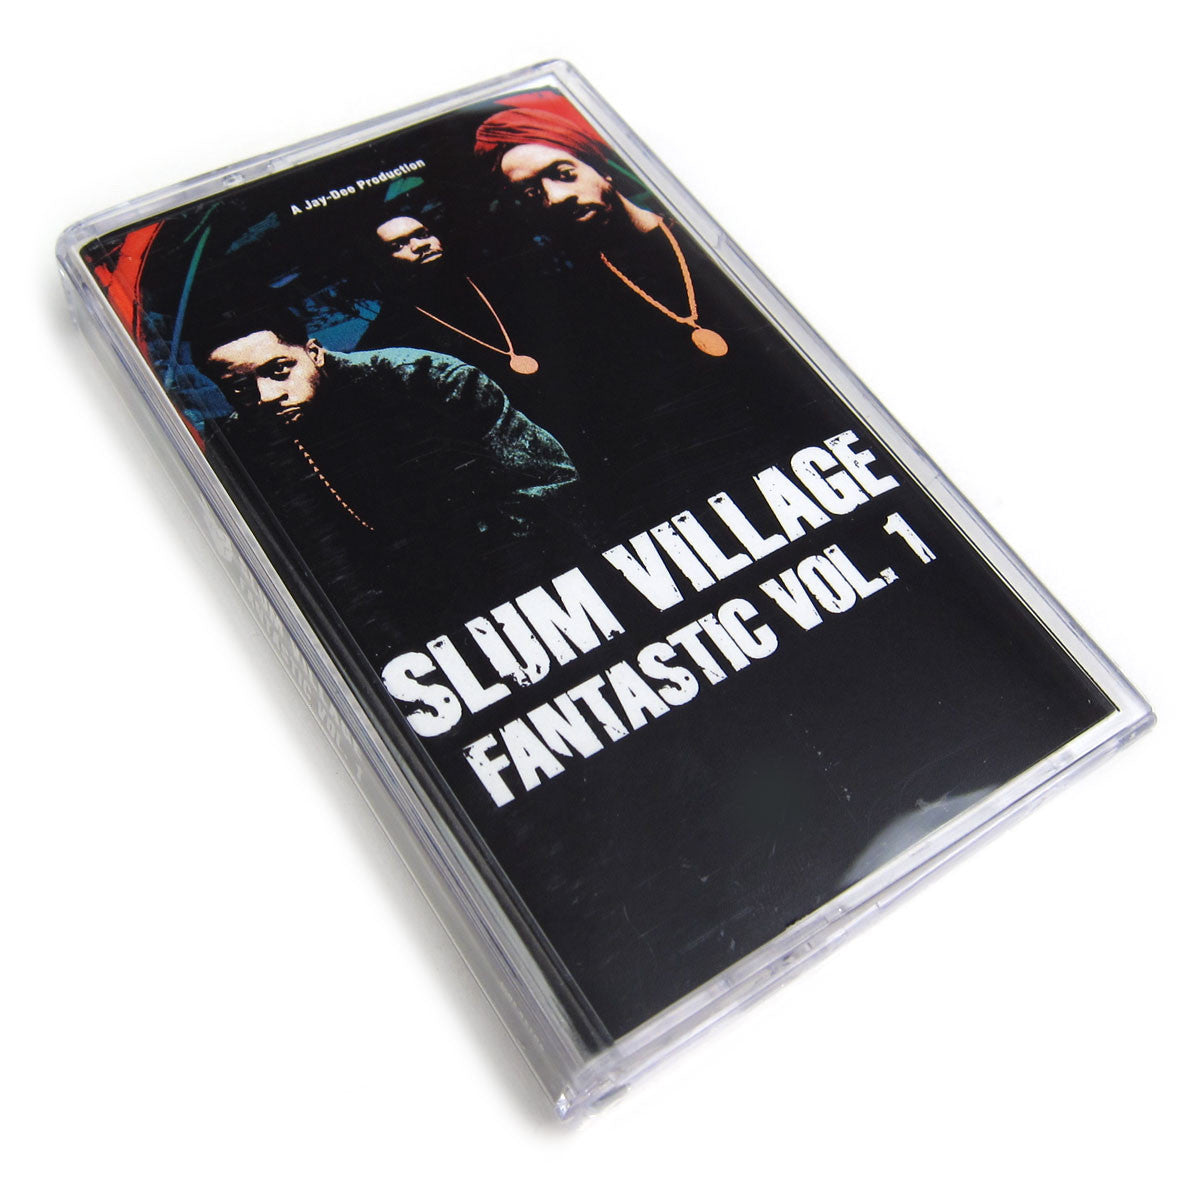 Slum Village: Fantastic Vol.1 Cassette